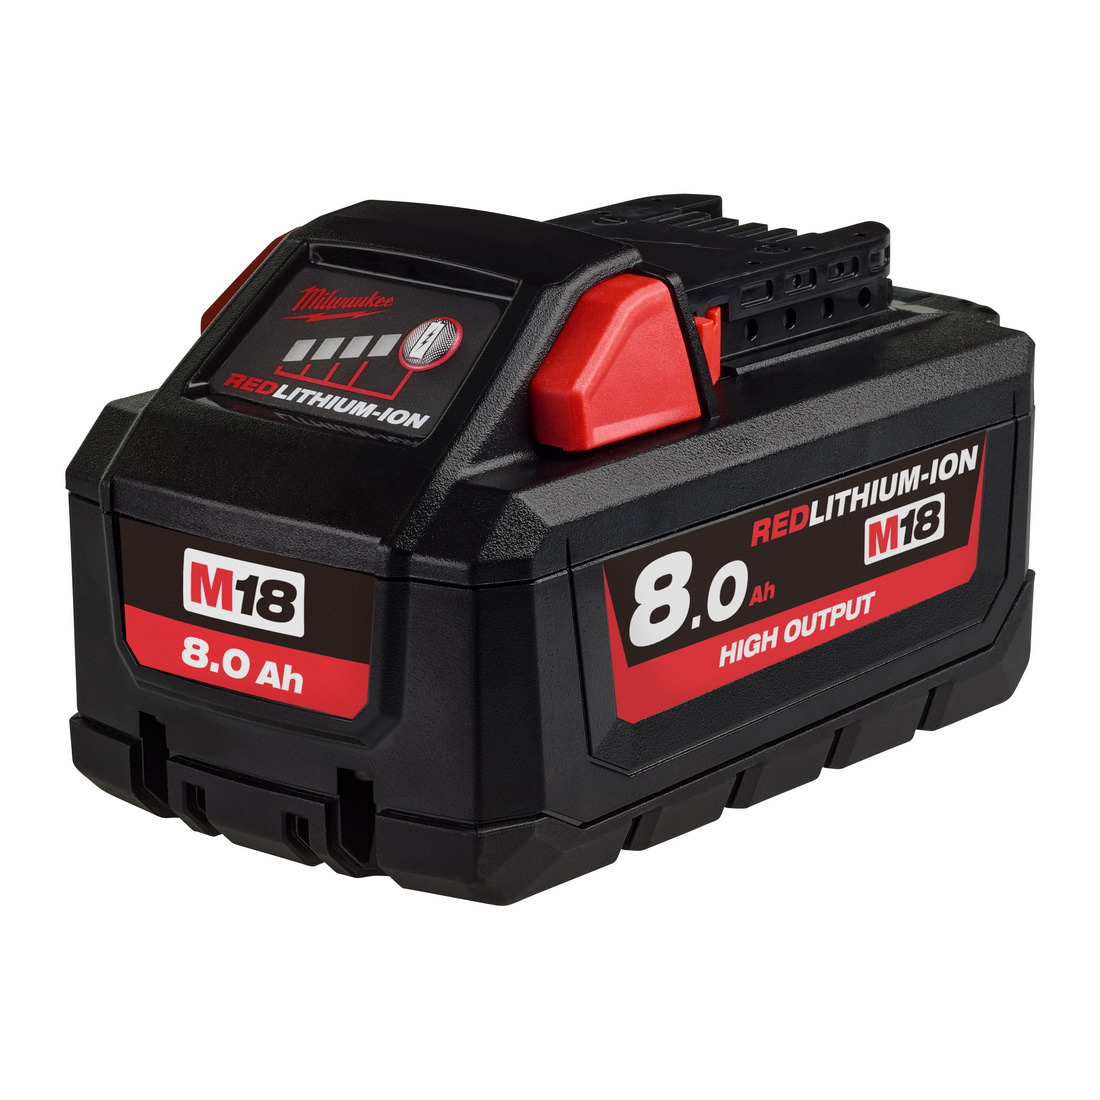 M18 REDLITHIUM -ION High Output Battery 8.0Ah